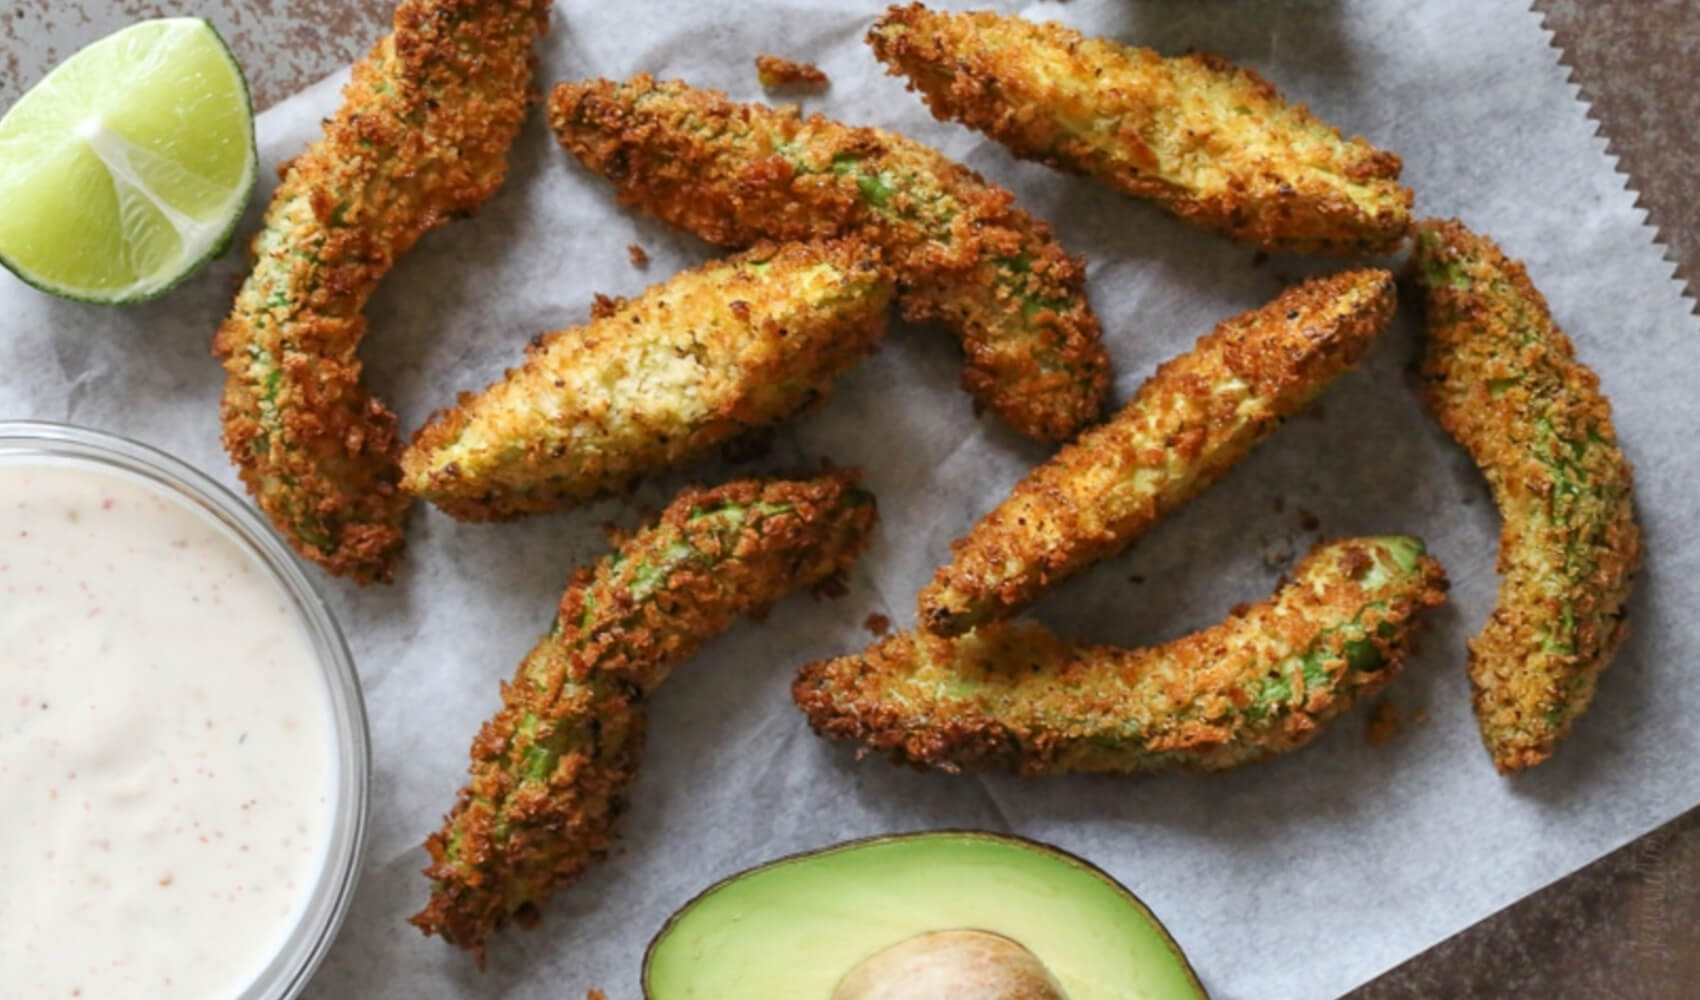 Avocado Fries with Lime Dipping Sauce